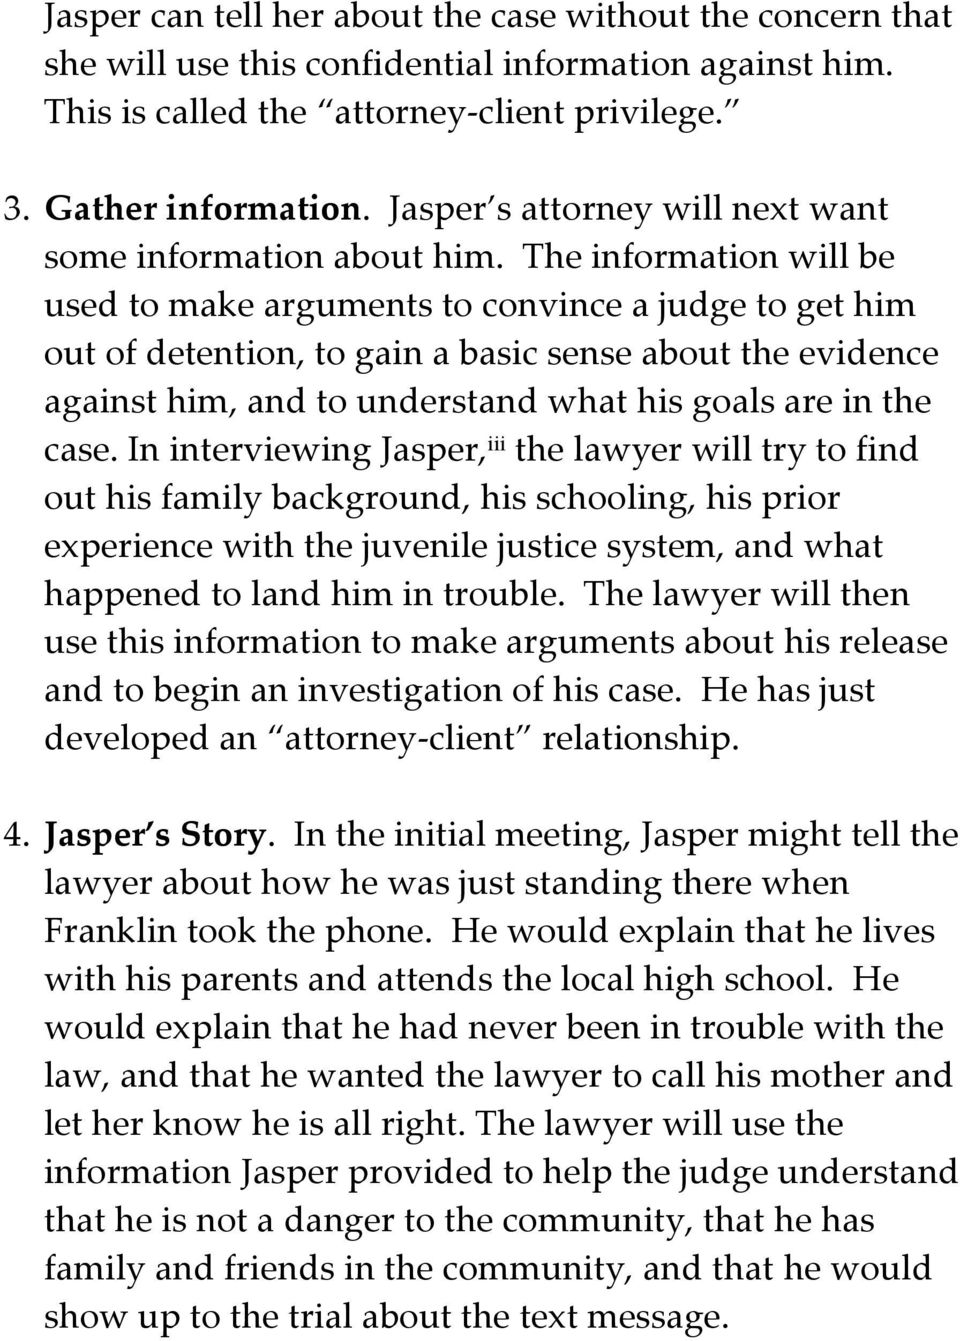 The information will be used to make arguments to convince a judge to get him out of detention, to gain a basic sense about the evidence against him, and to understand what his goals are in the case.